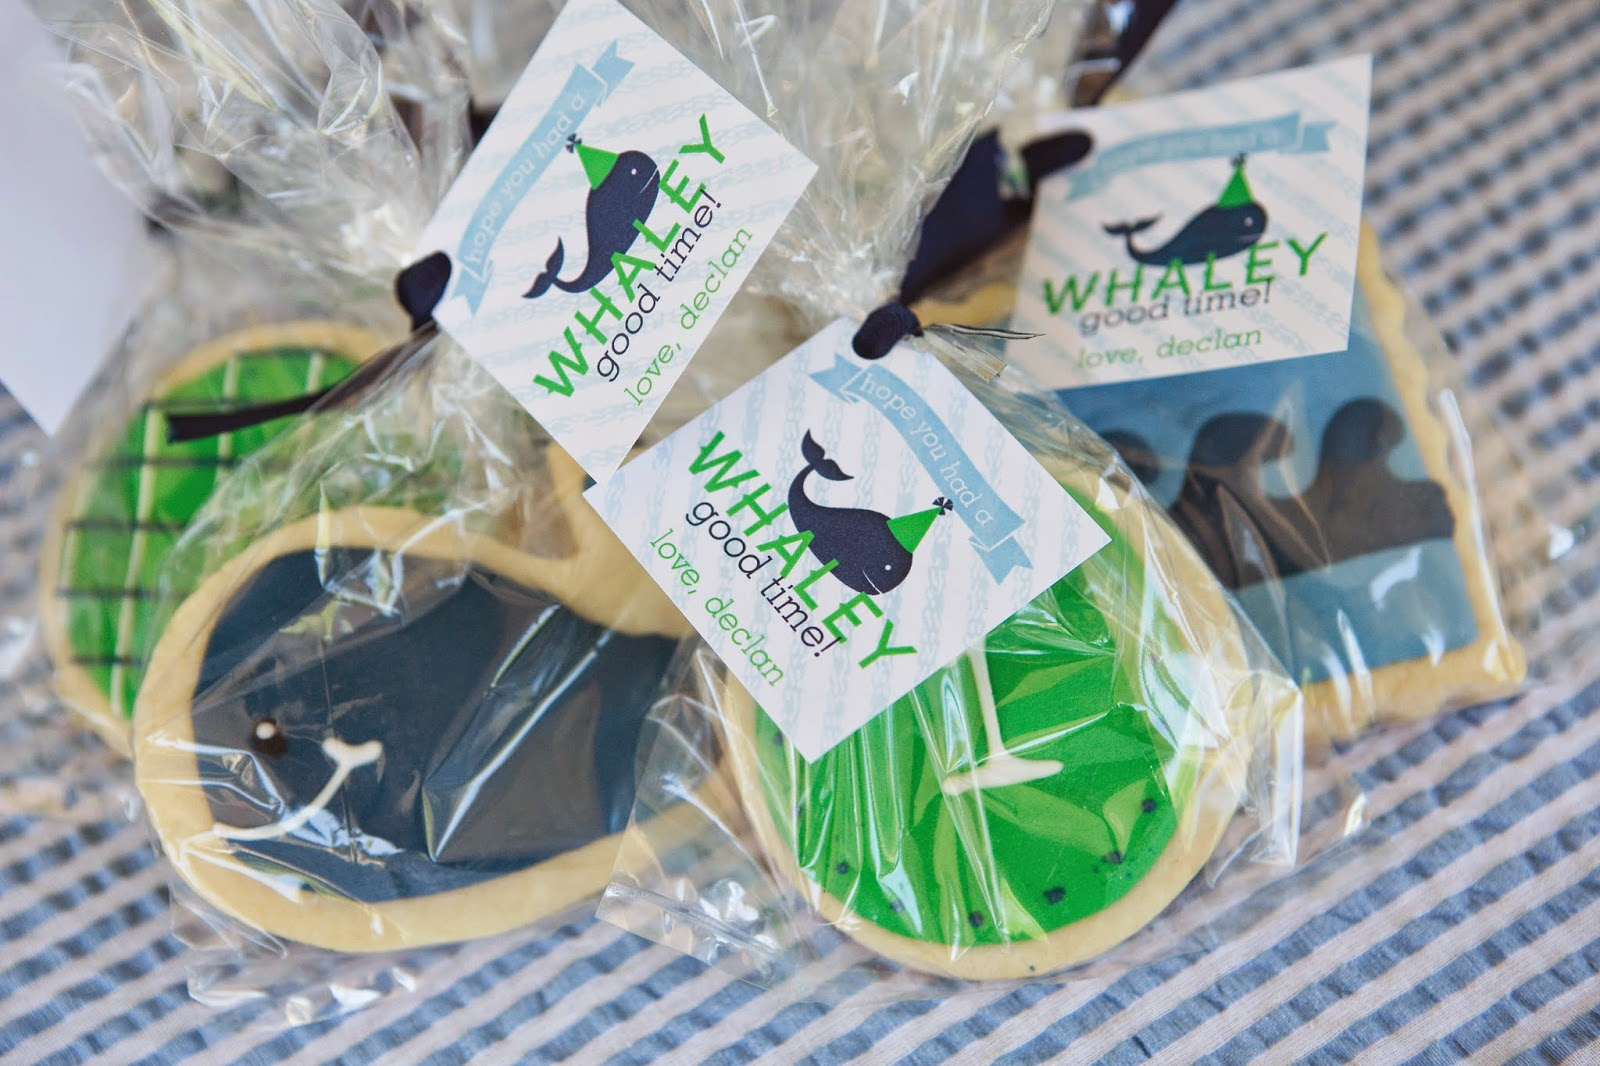 Whale Birthday Party Cookie Favors